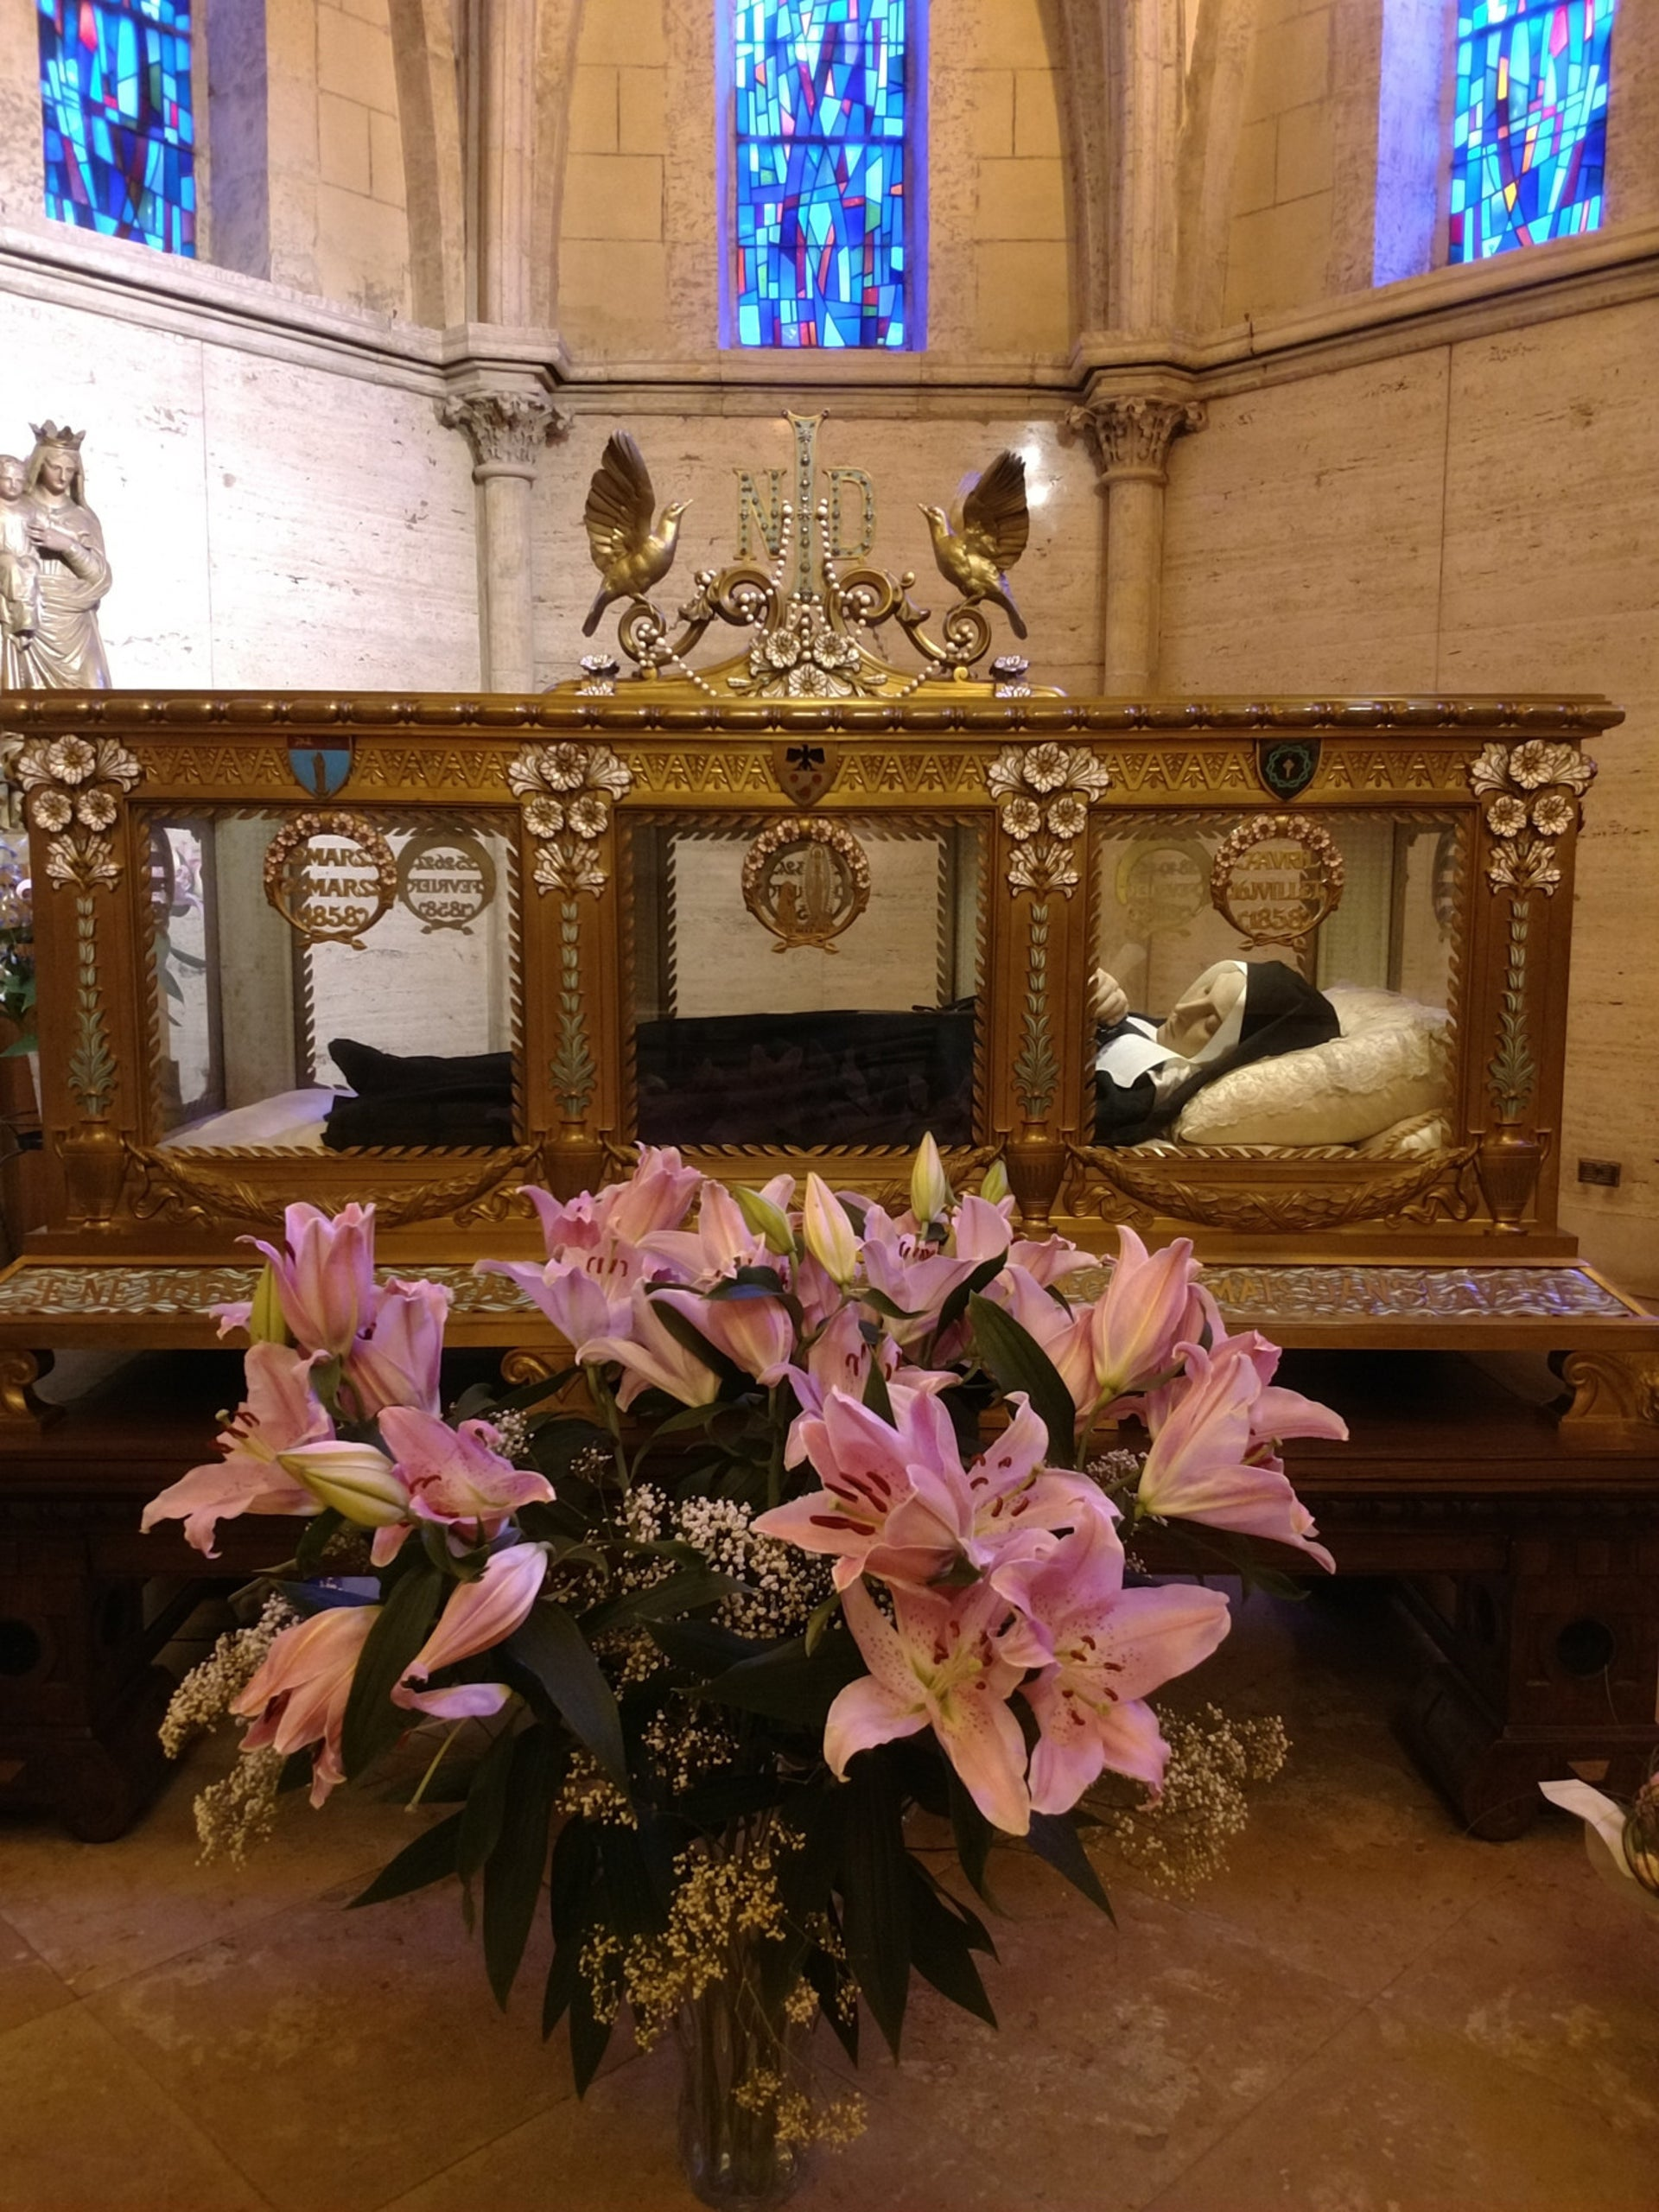 St. Bernadette's  allegedly incorrupt body on display in Nevers, France.